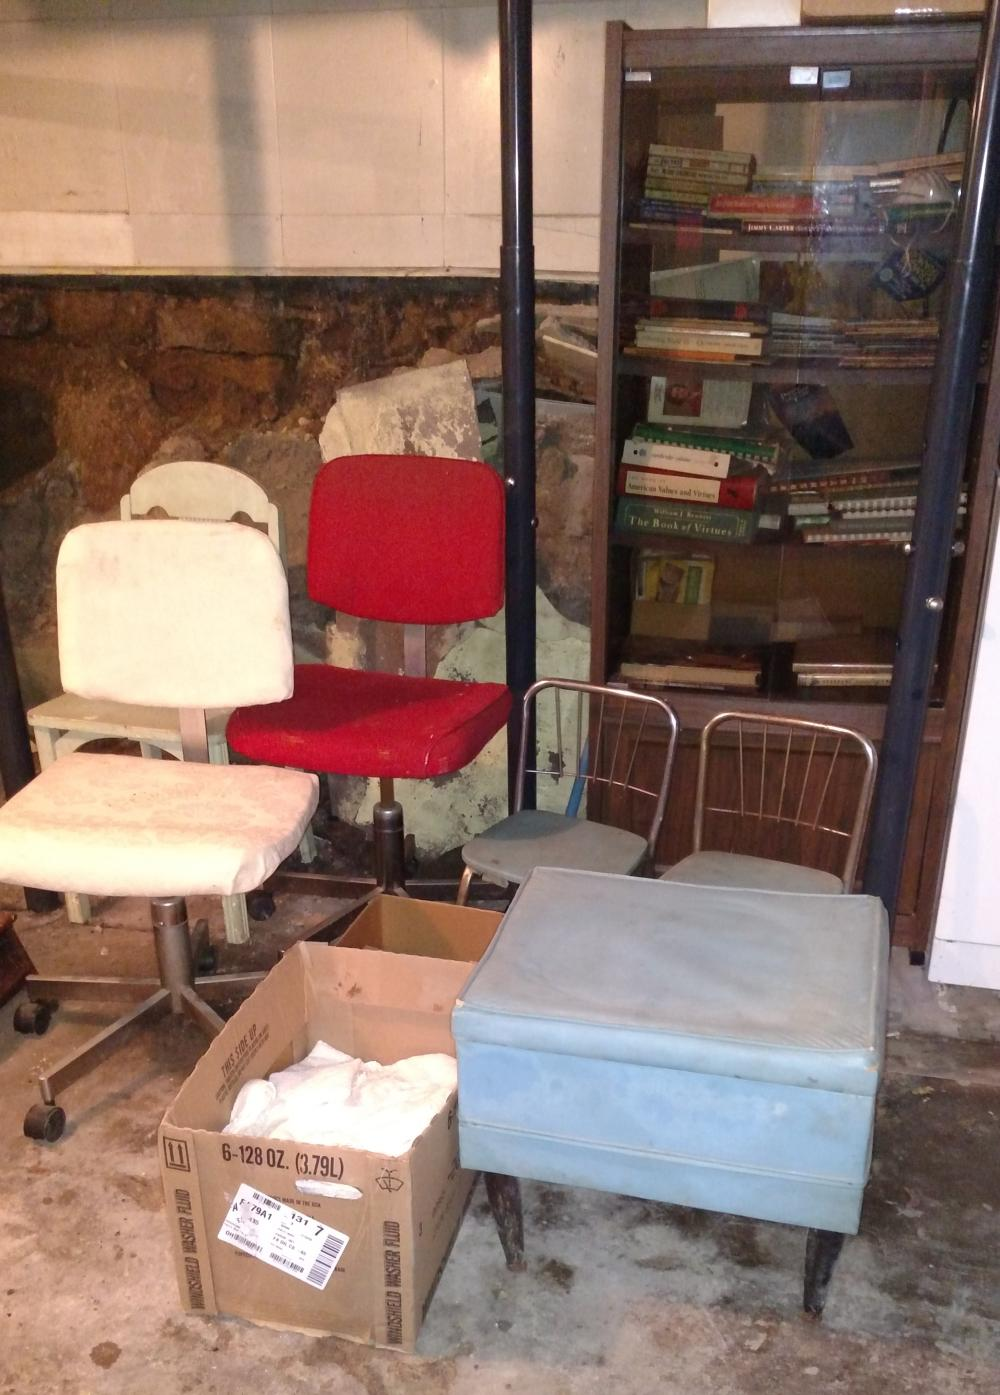 wood chair, rolling chair, youth metal chairs, media cabinet w/ books, hamper, lift top footstool-- a bit rough